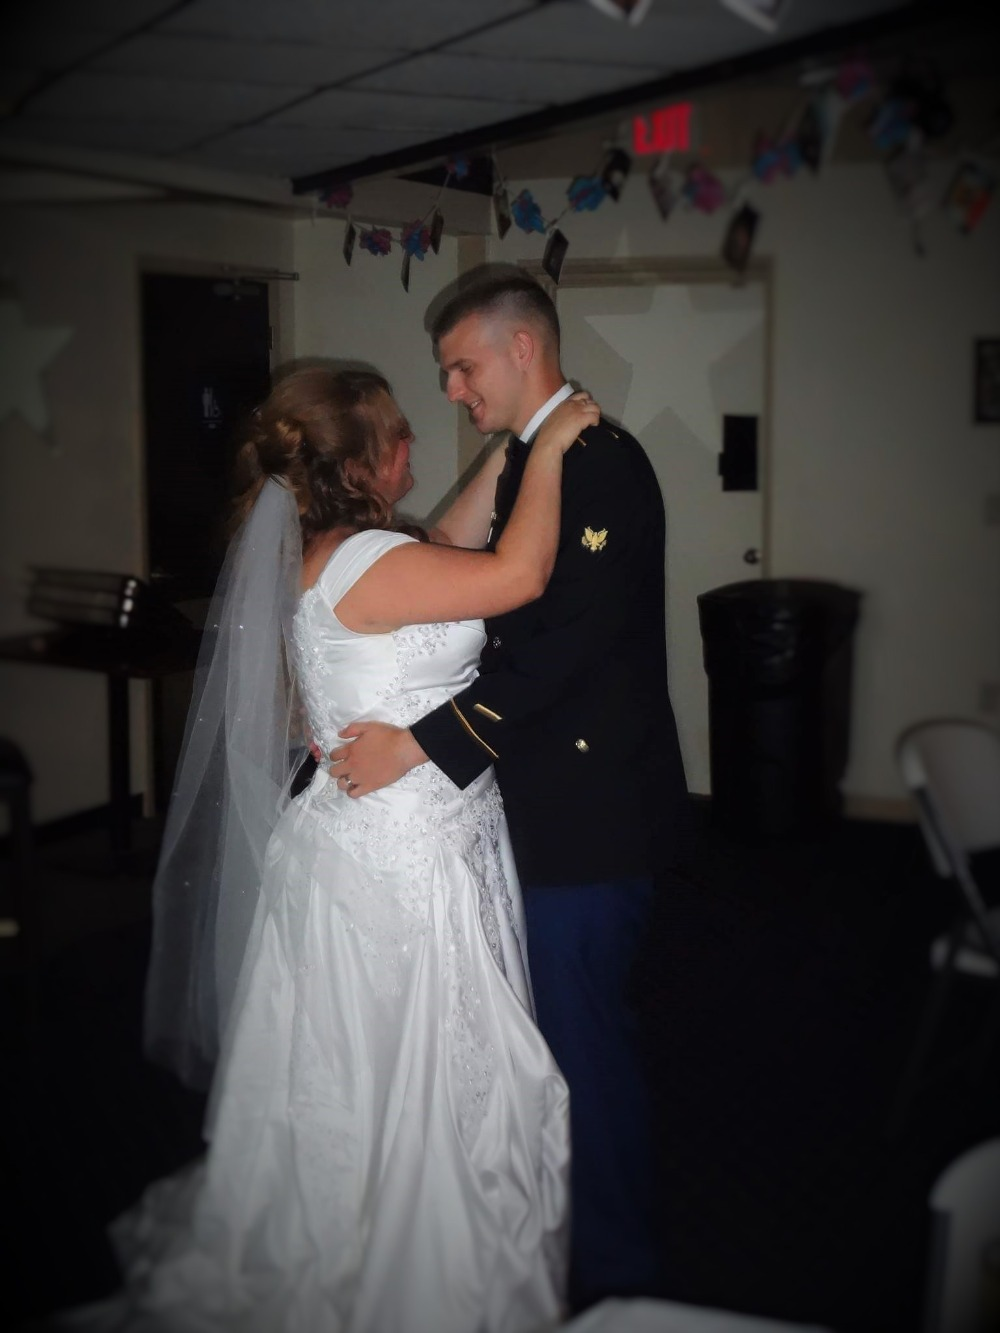 My Wife Nicole And I Dancing At Allstar Lanes During Our Wedding